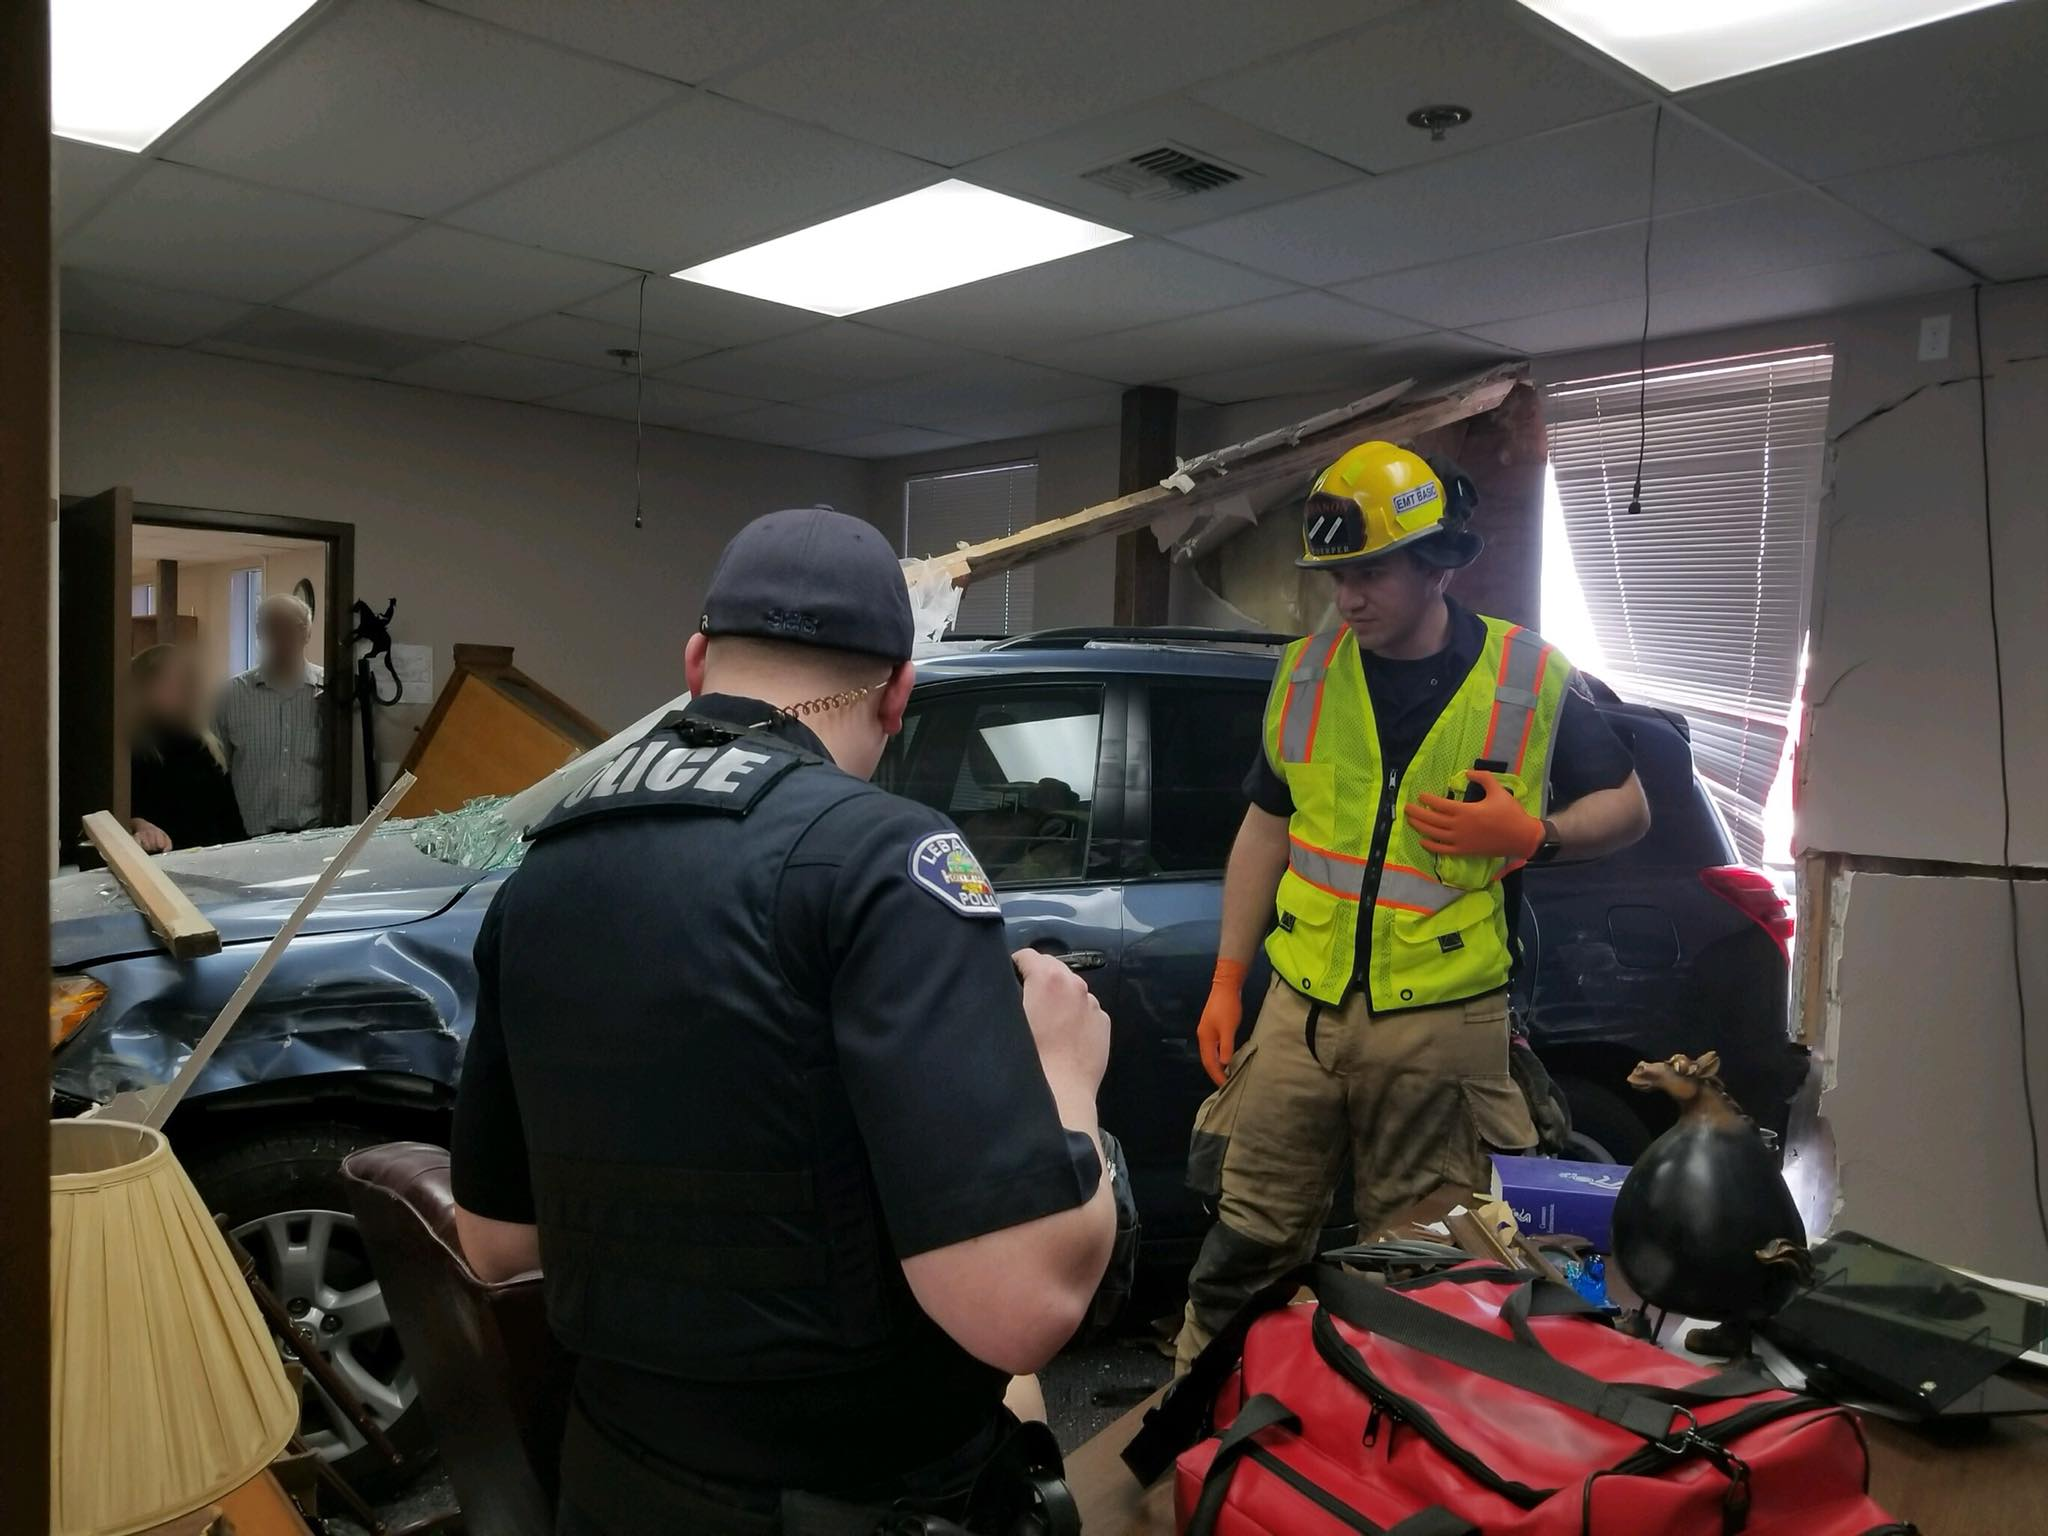 The Lebanon Fire District responded to a woman who had driven through a church on Jan. 16, 2018. Photo courtesy Lebanon Fire District